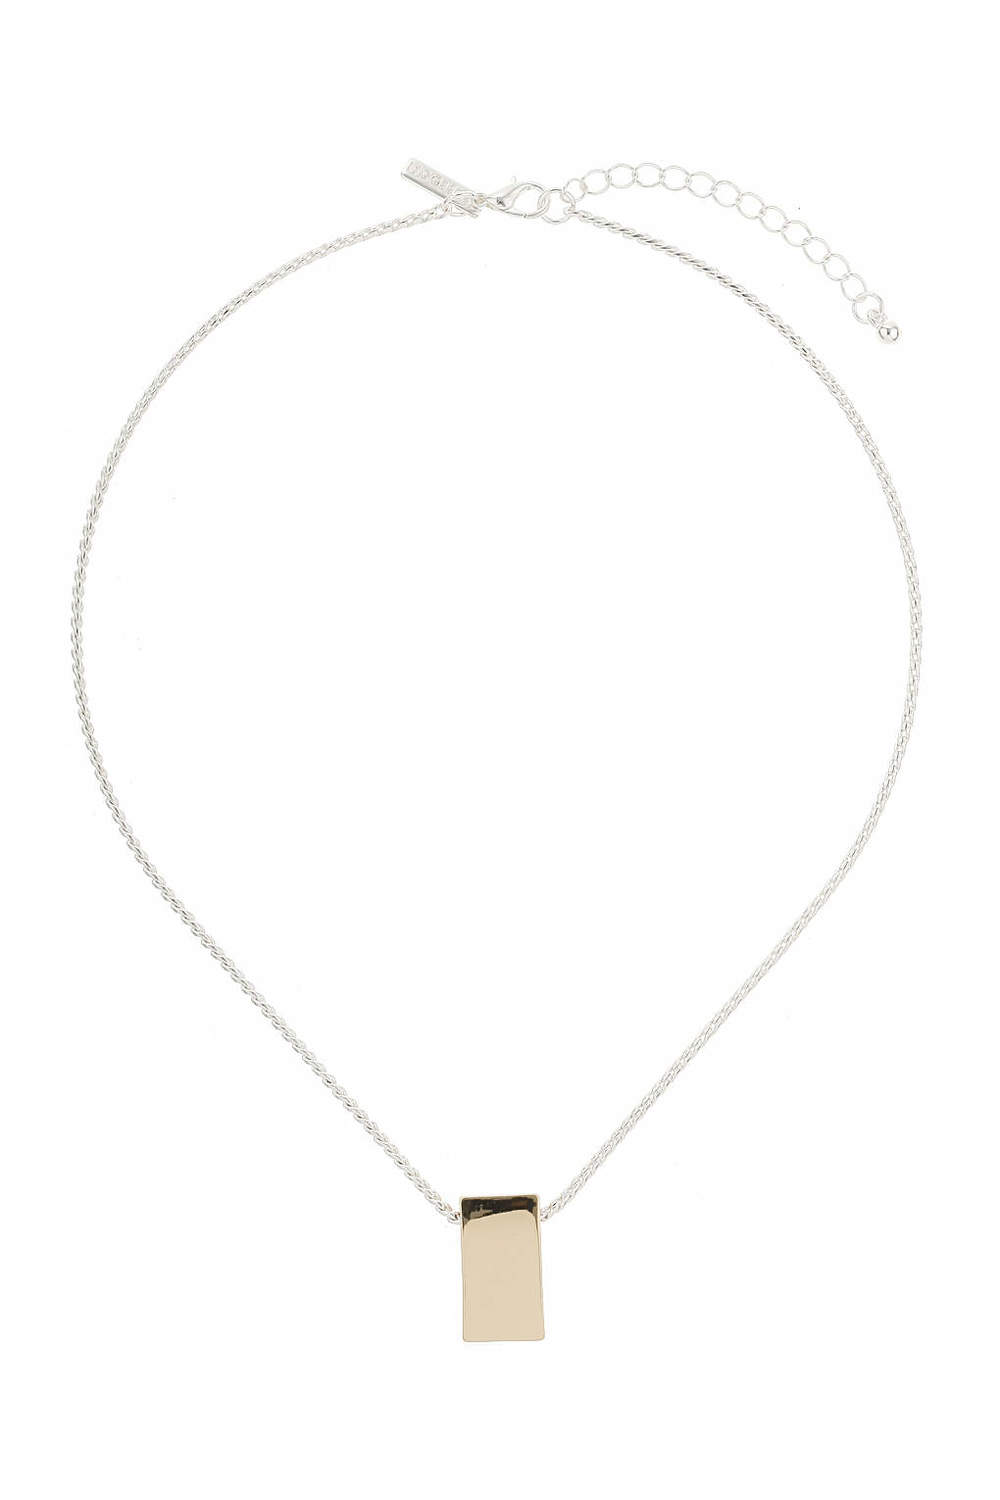 Silver and Gold Rectangle Necklace. Topshop. Was: $15 Now: $10.